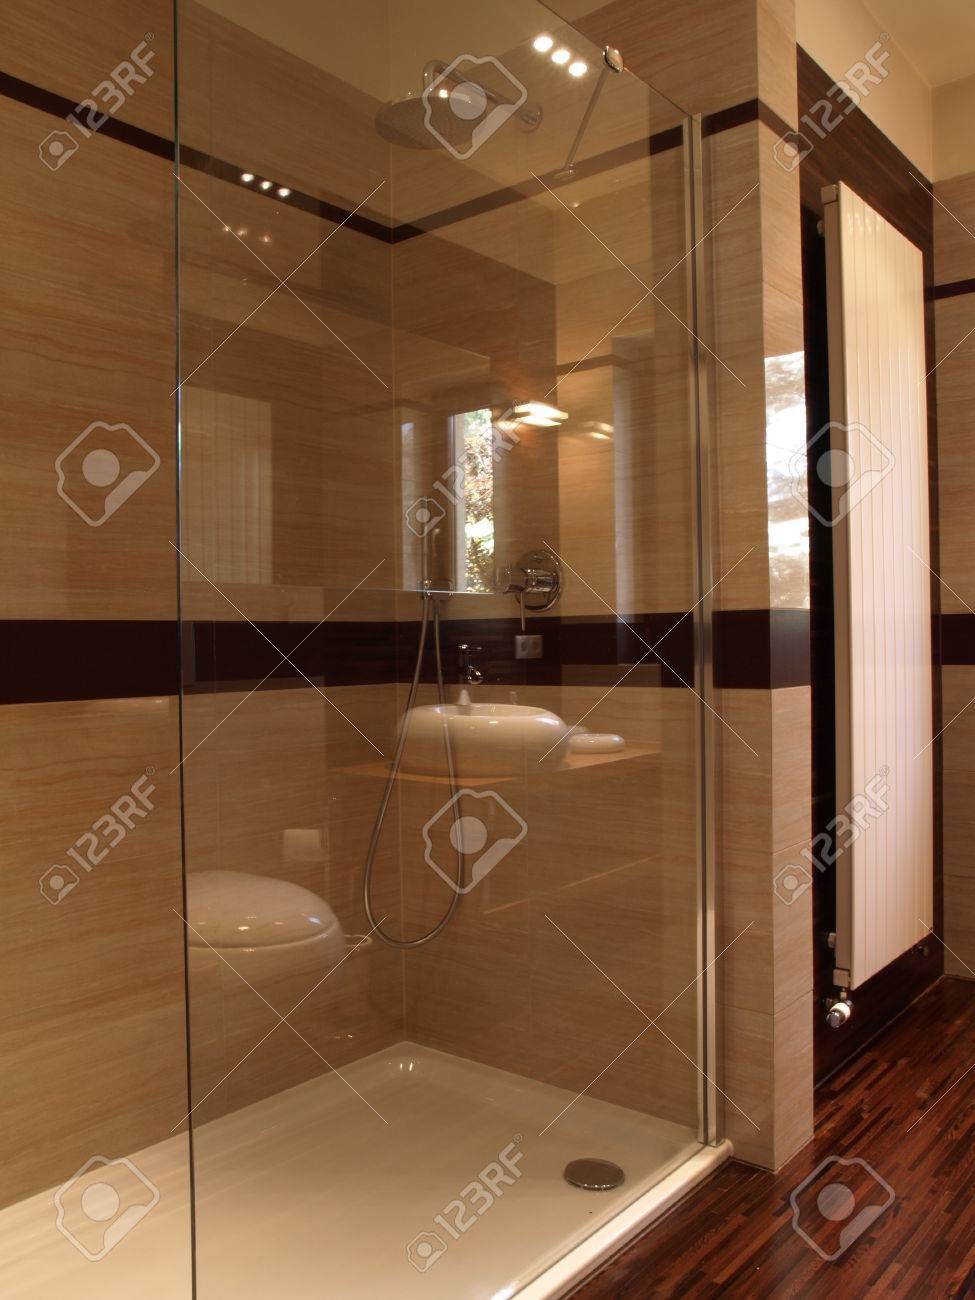 Modern Glass Shower In A Luxury House Stock Photo, Picture And ...